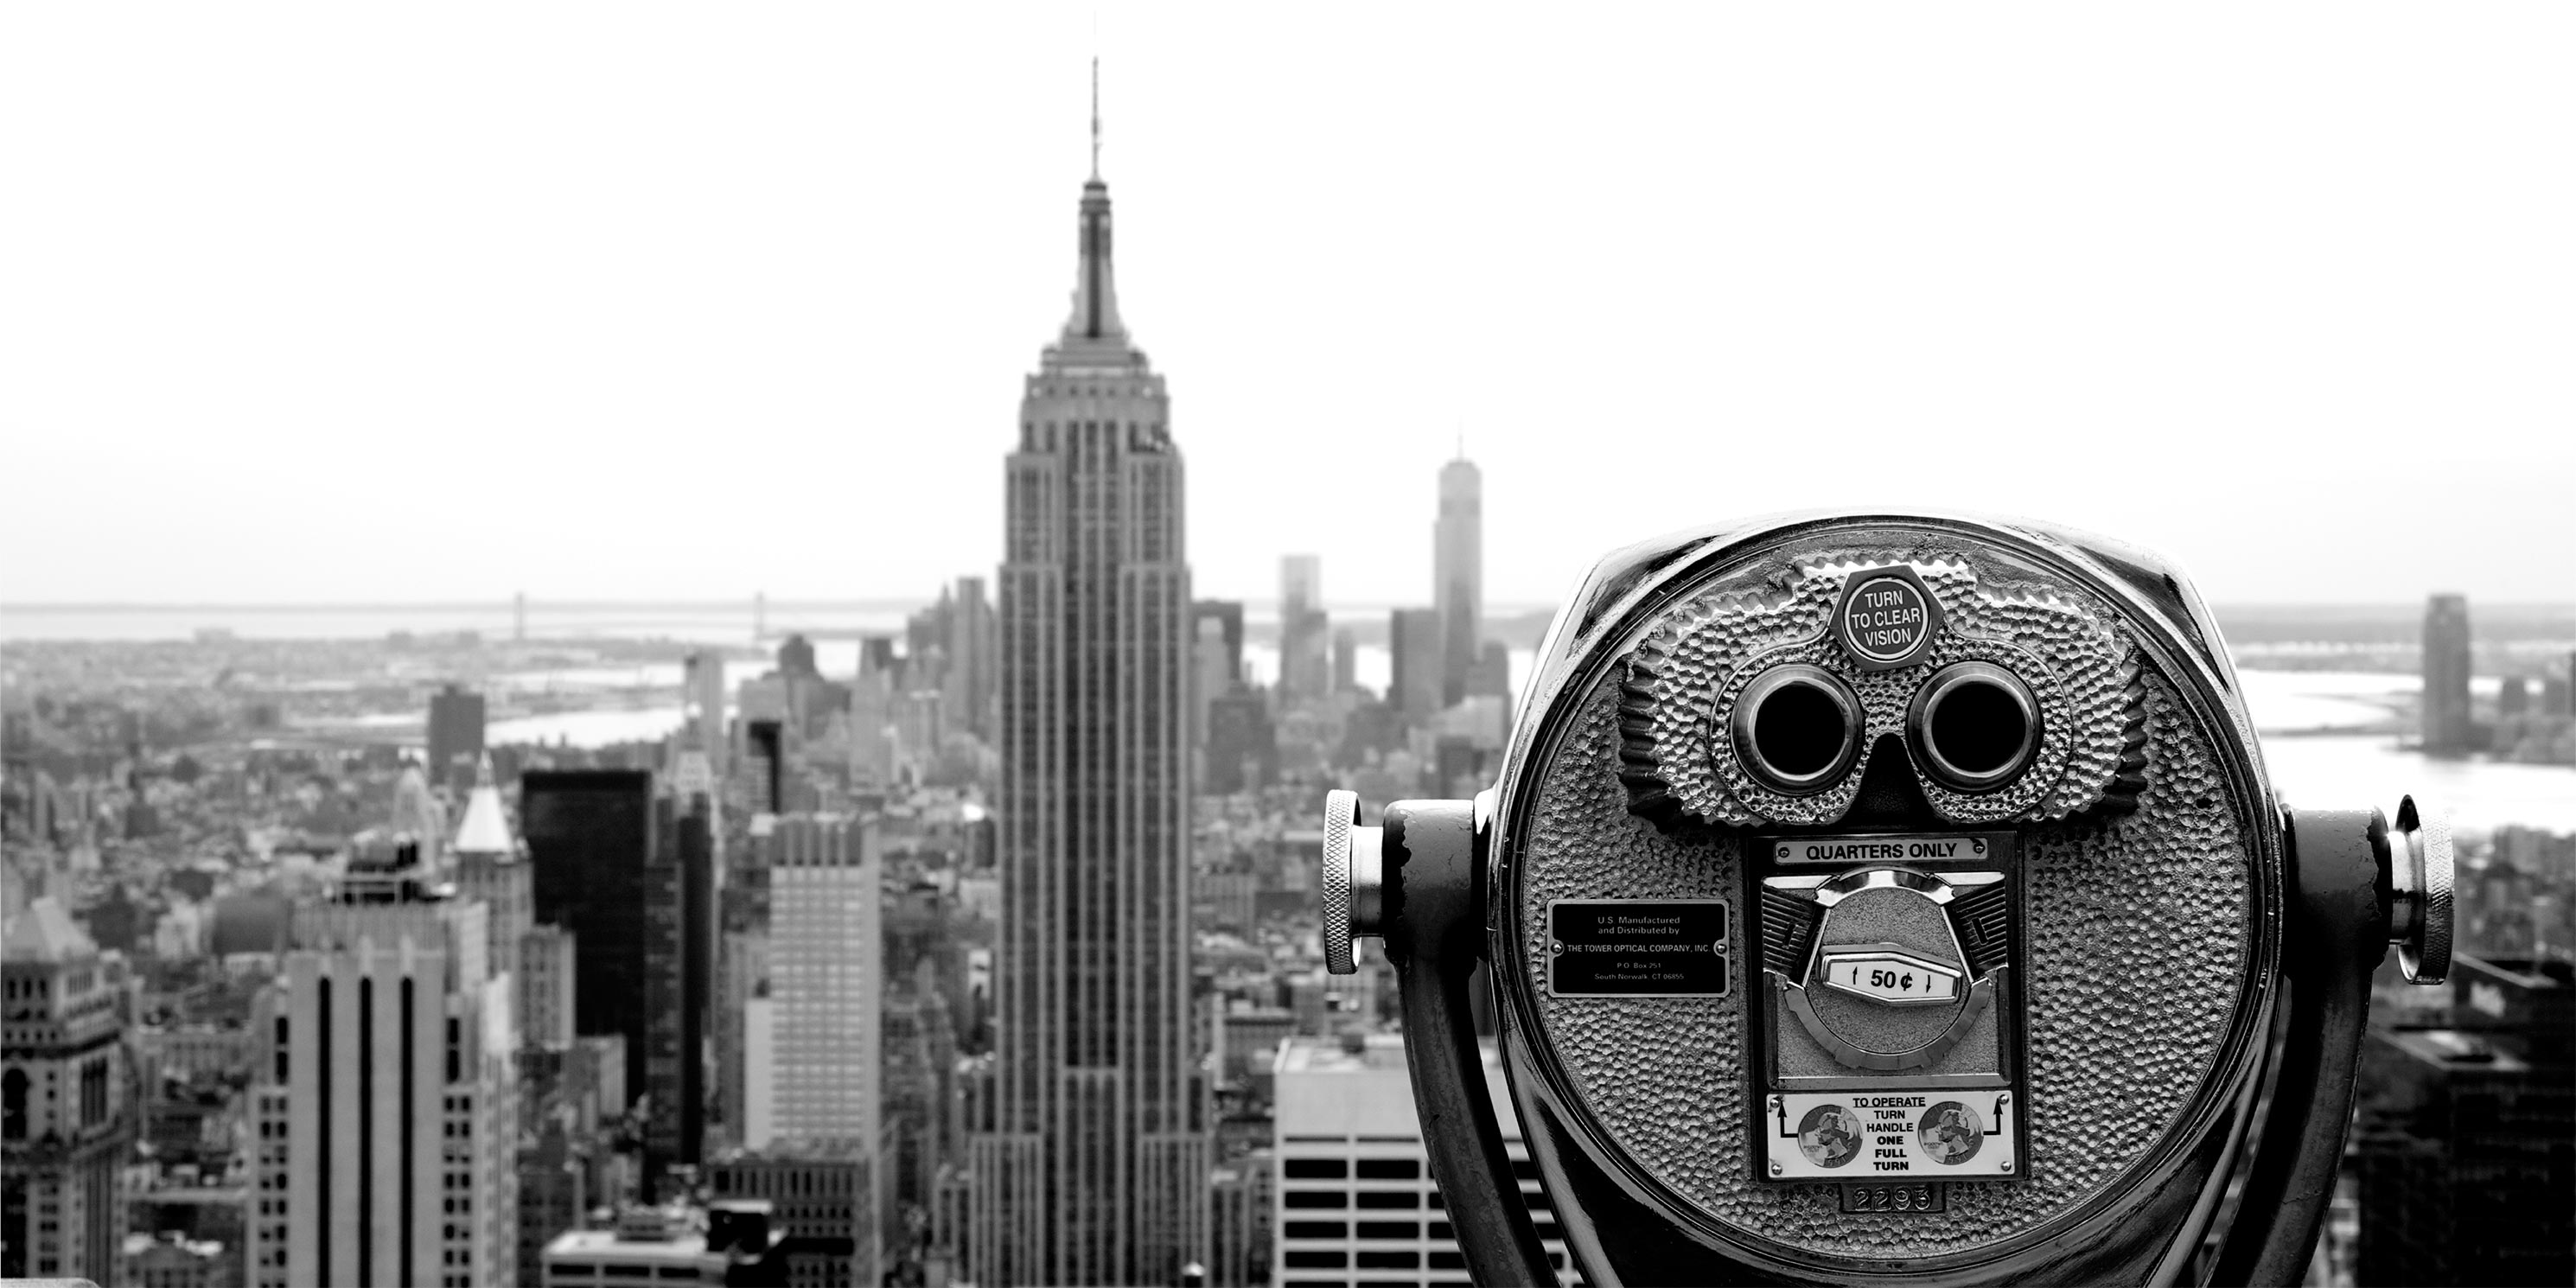 viewfinder telescope and Empire State Building in background